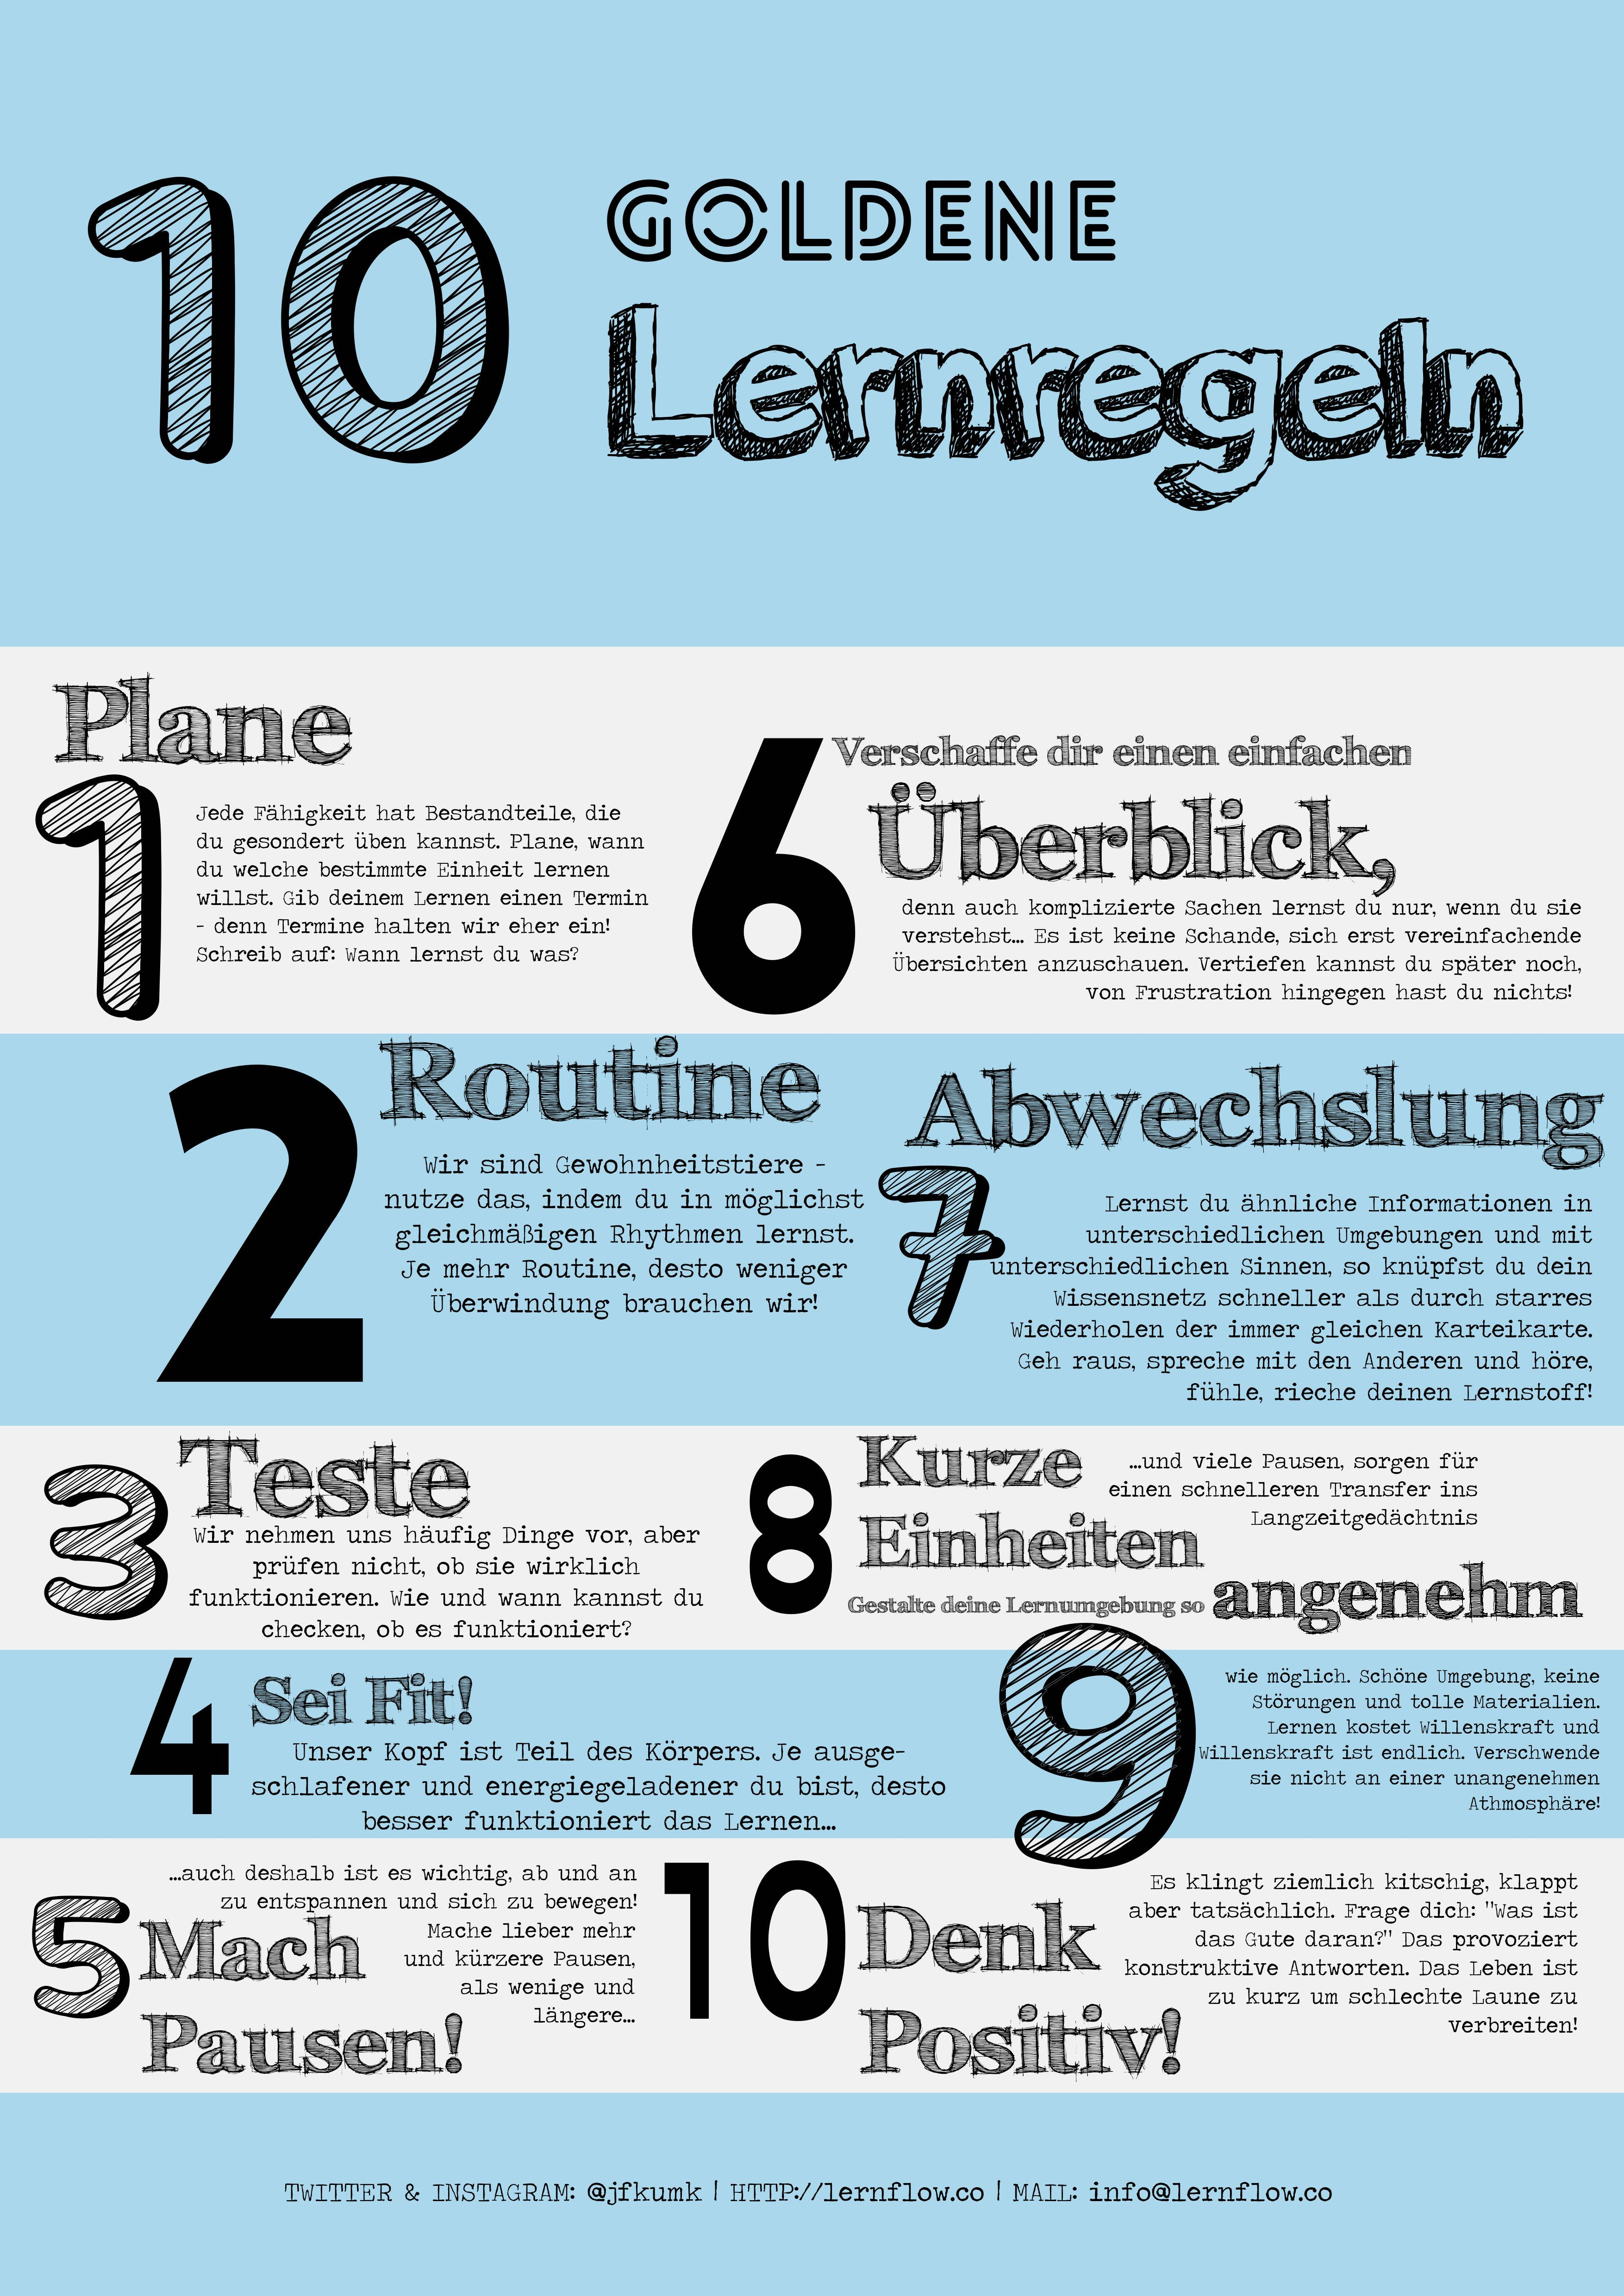 6 Ways to Get the Most Out of Social Media Sites | Pinterest ...